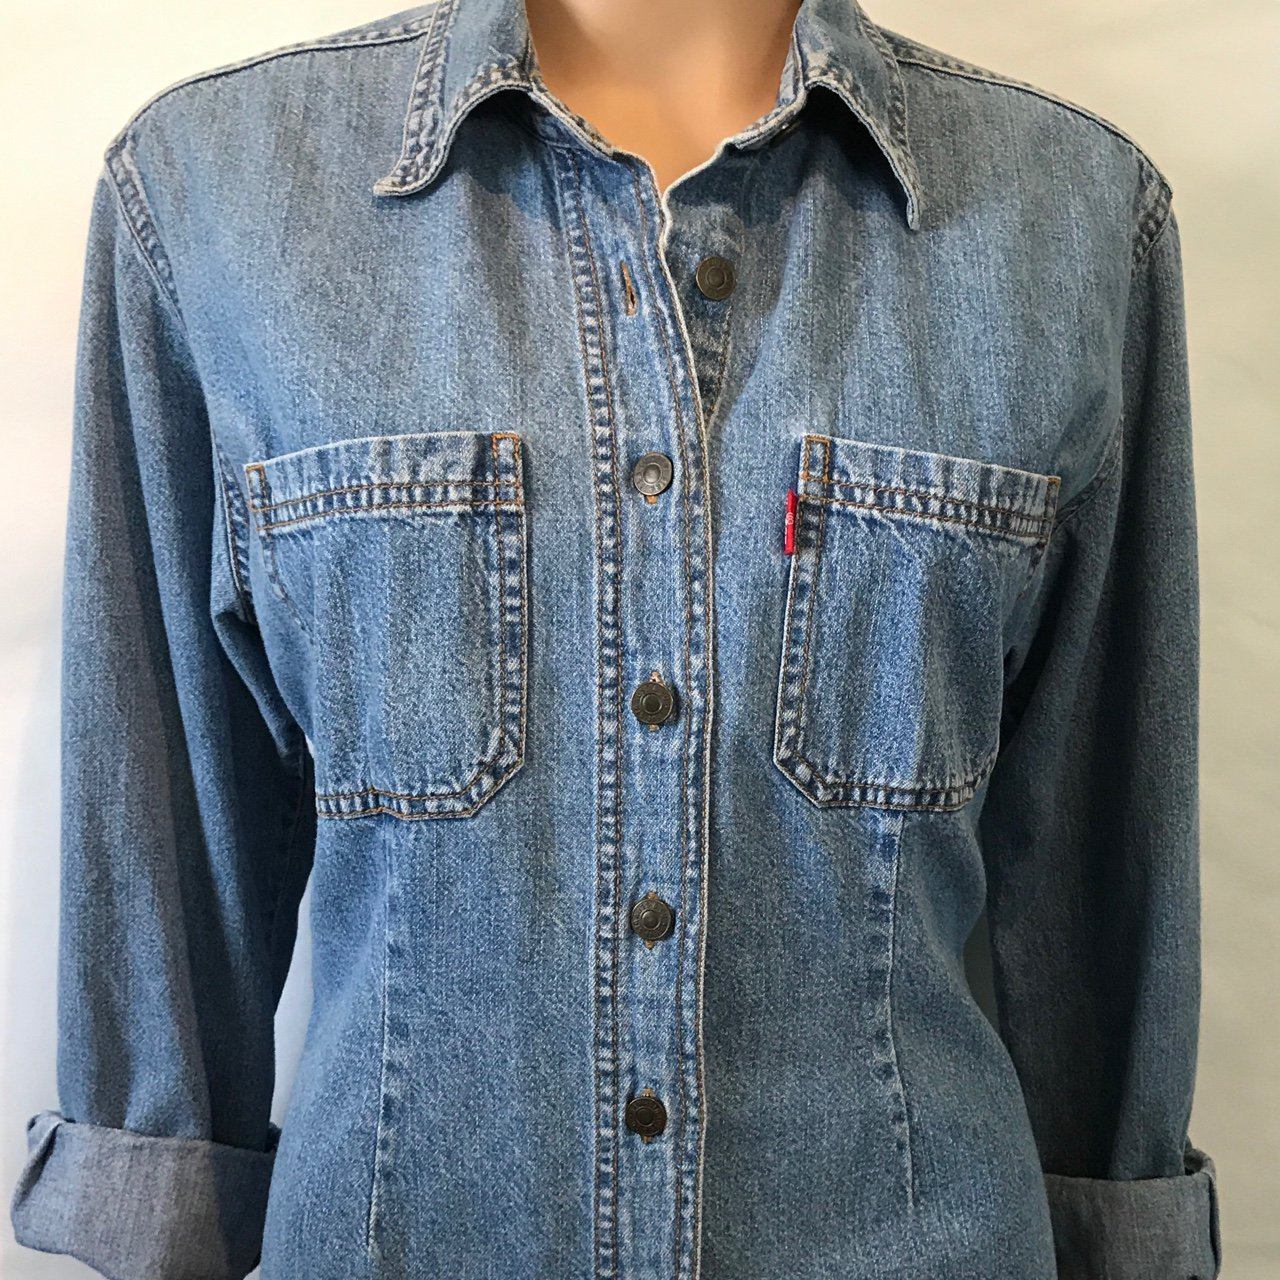 72e80f02f3 Vintage Levi s Blue Jean Shirt Exactly as pictured Please - Depop